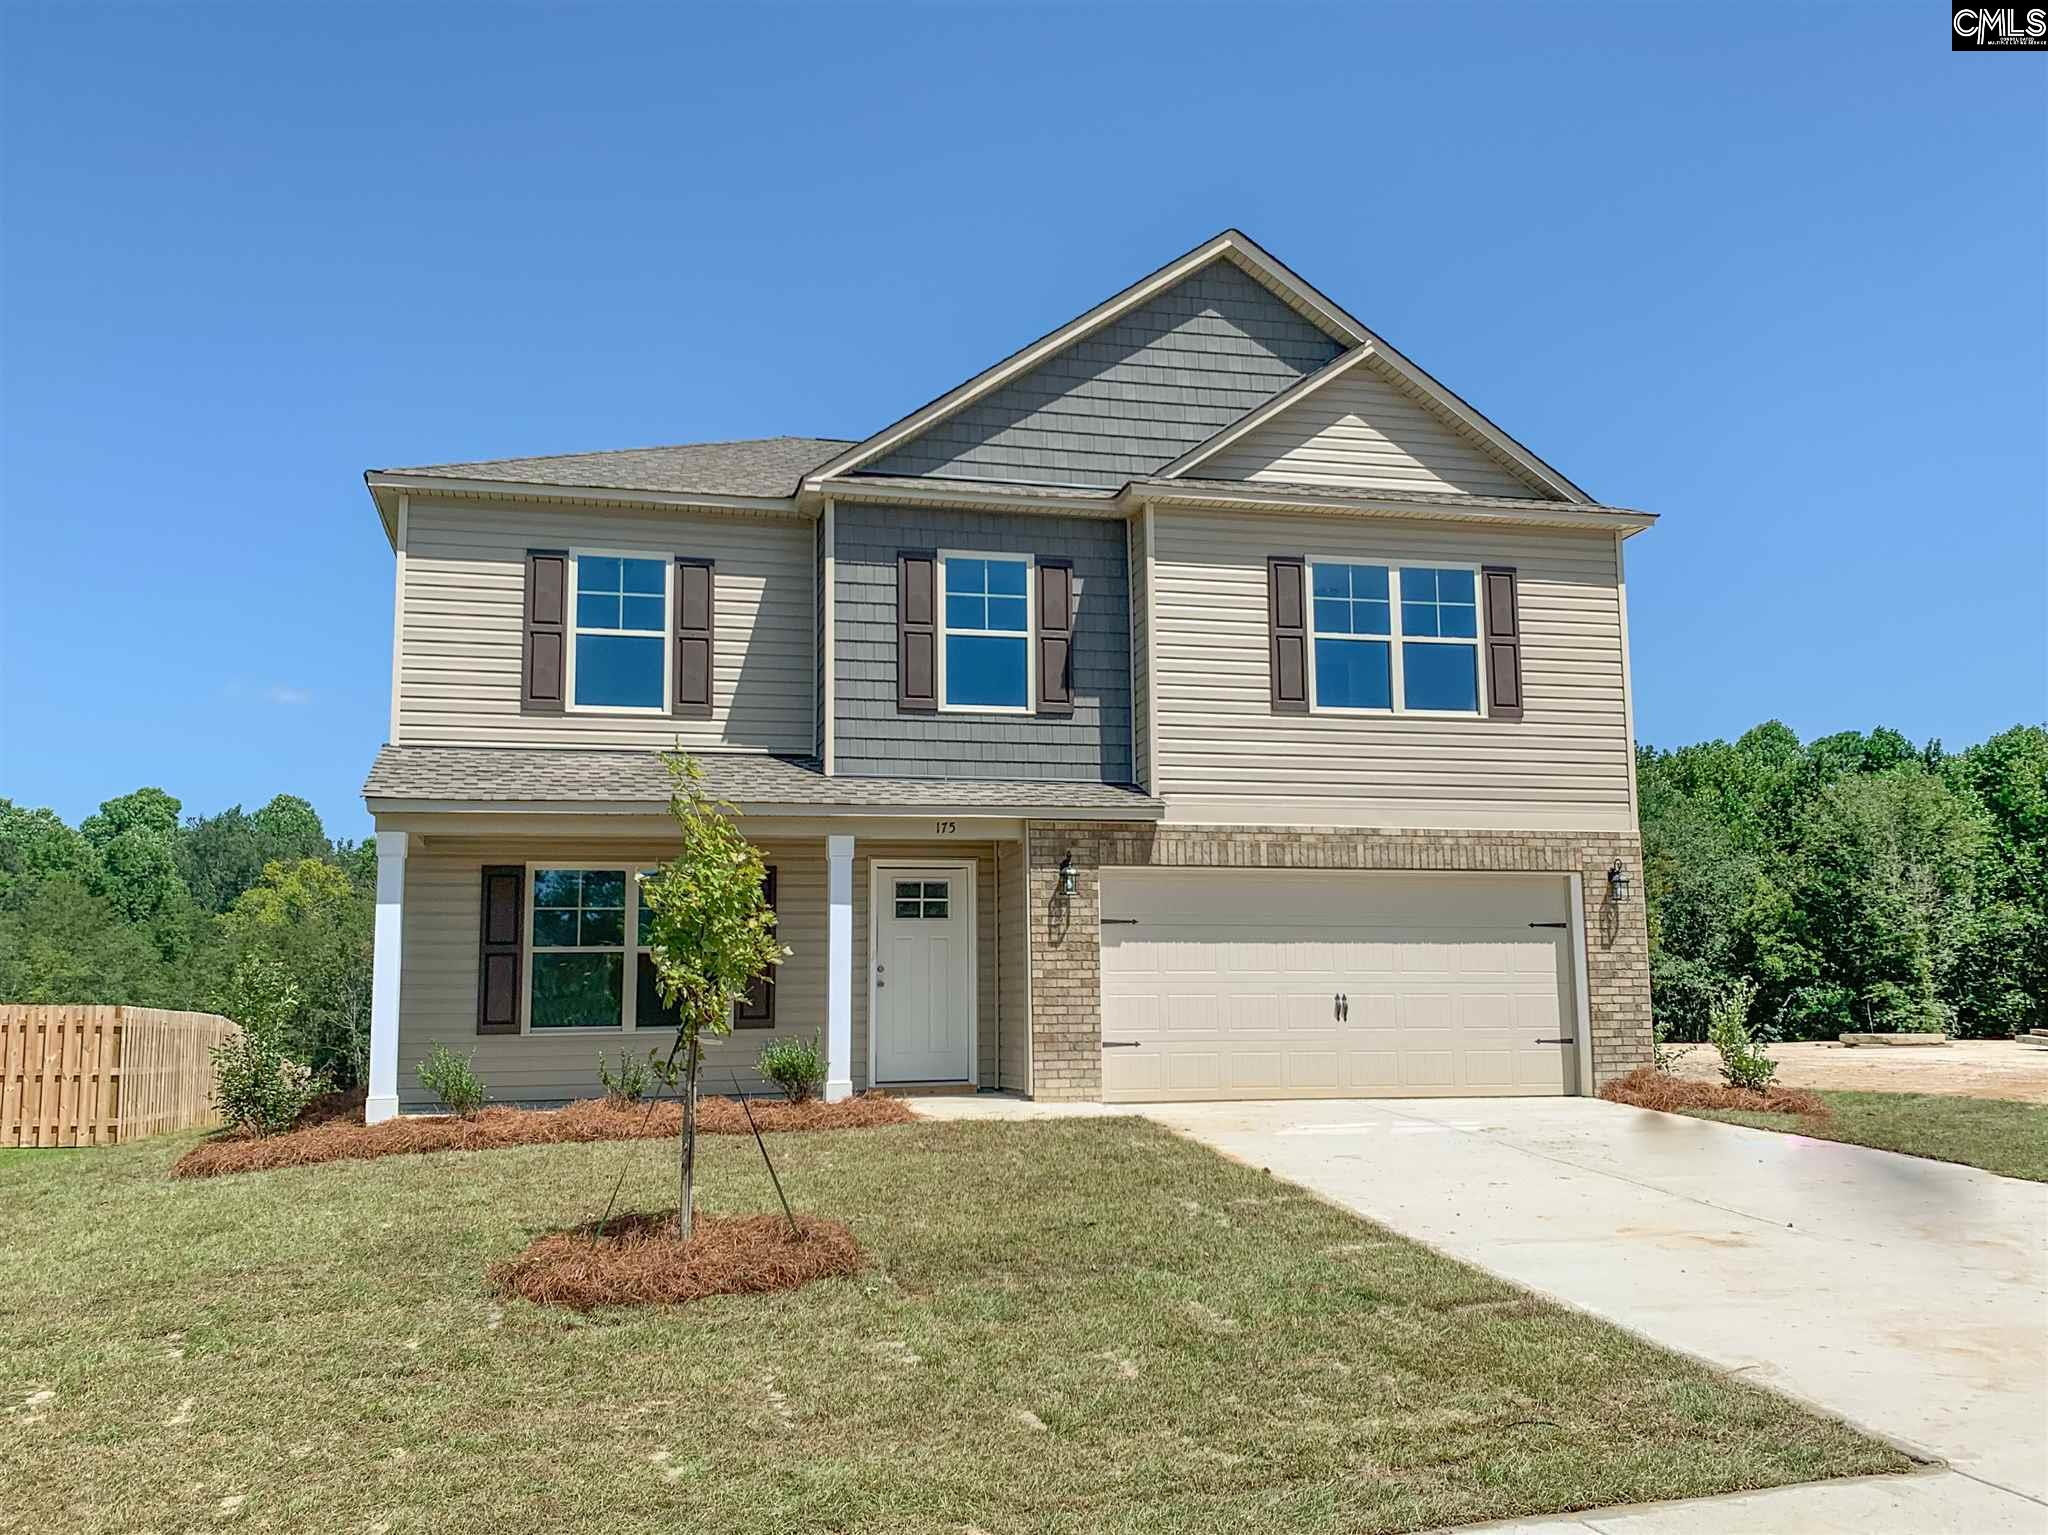 228 Drummond Way Lexington, SC 29072